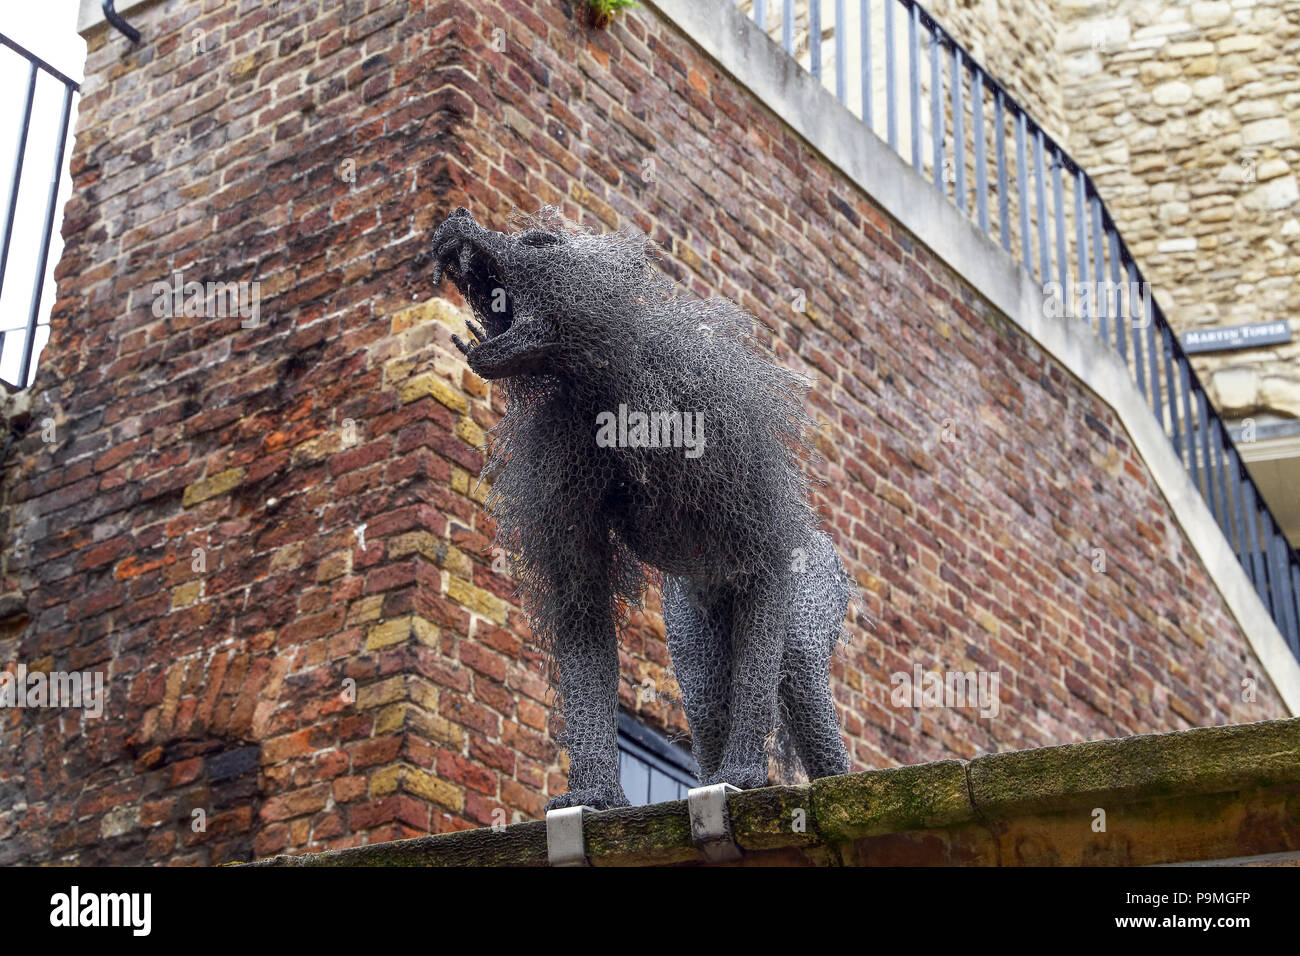 Wire animal sculptures at the Tower of London created by sculptor Kendra Haste, are a nod to the heritage of the Tower. Medieval Kings around Europe u - Stock Image